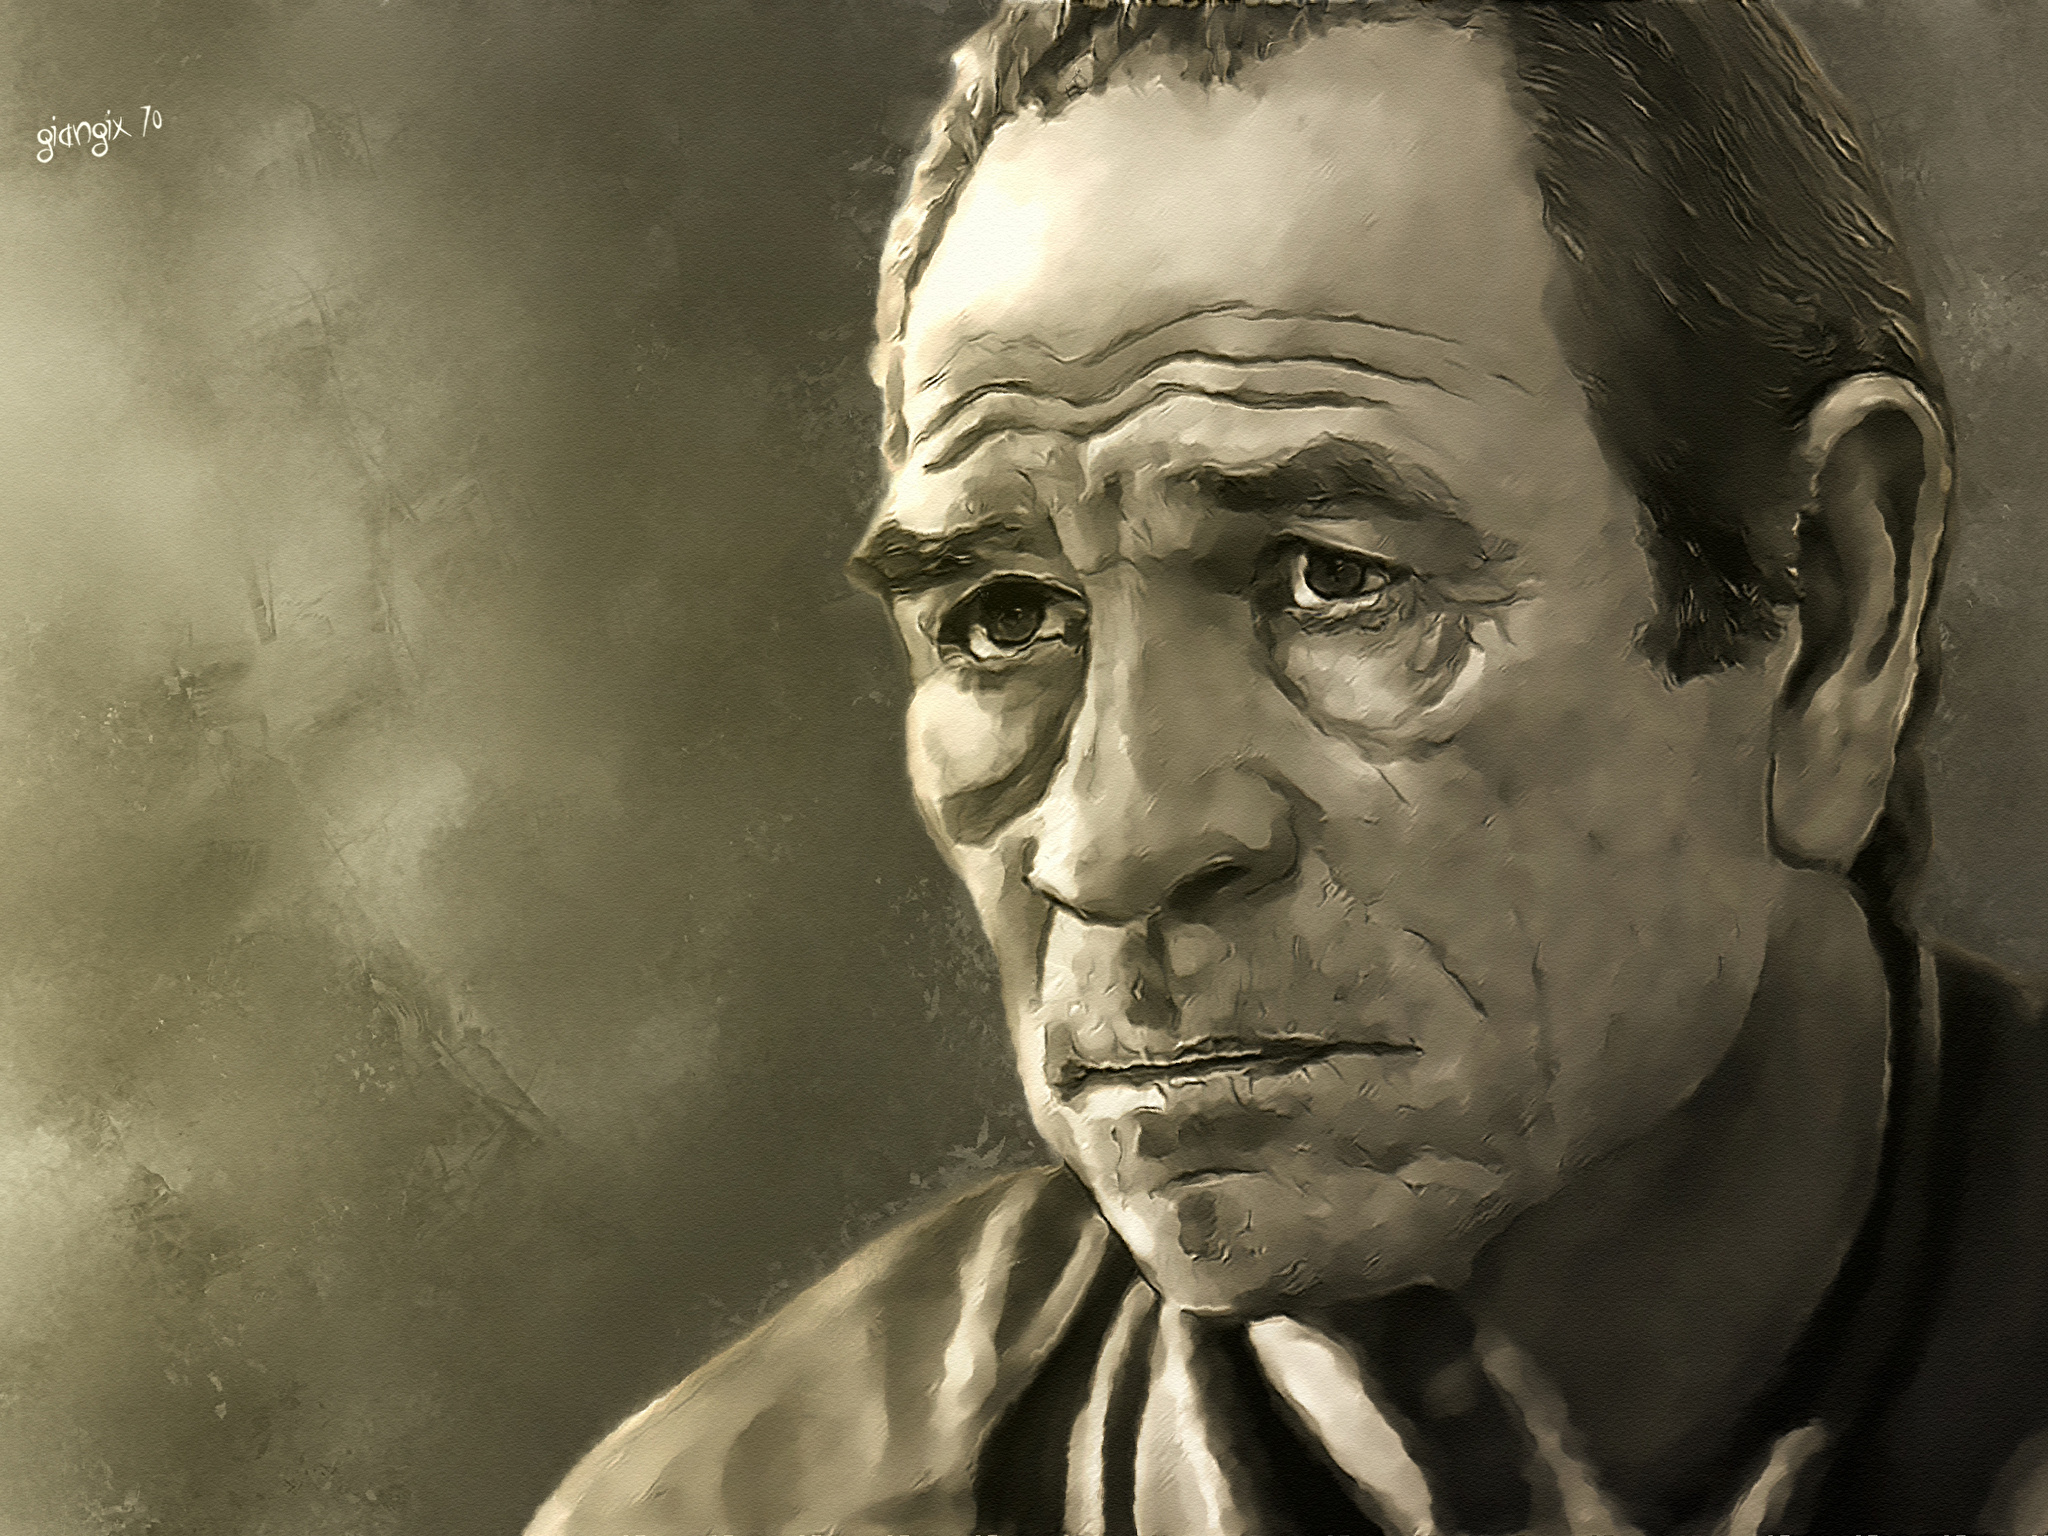 Pictures Man Tommy Lee Jones Face Celebrities Painting Art 2048x1536